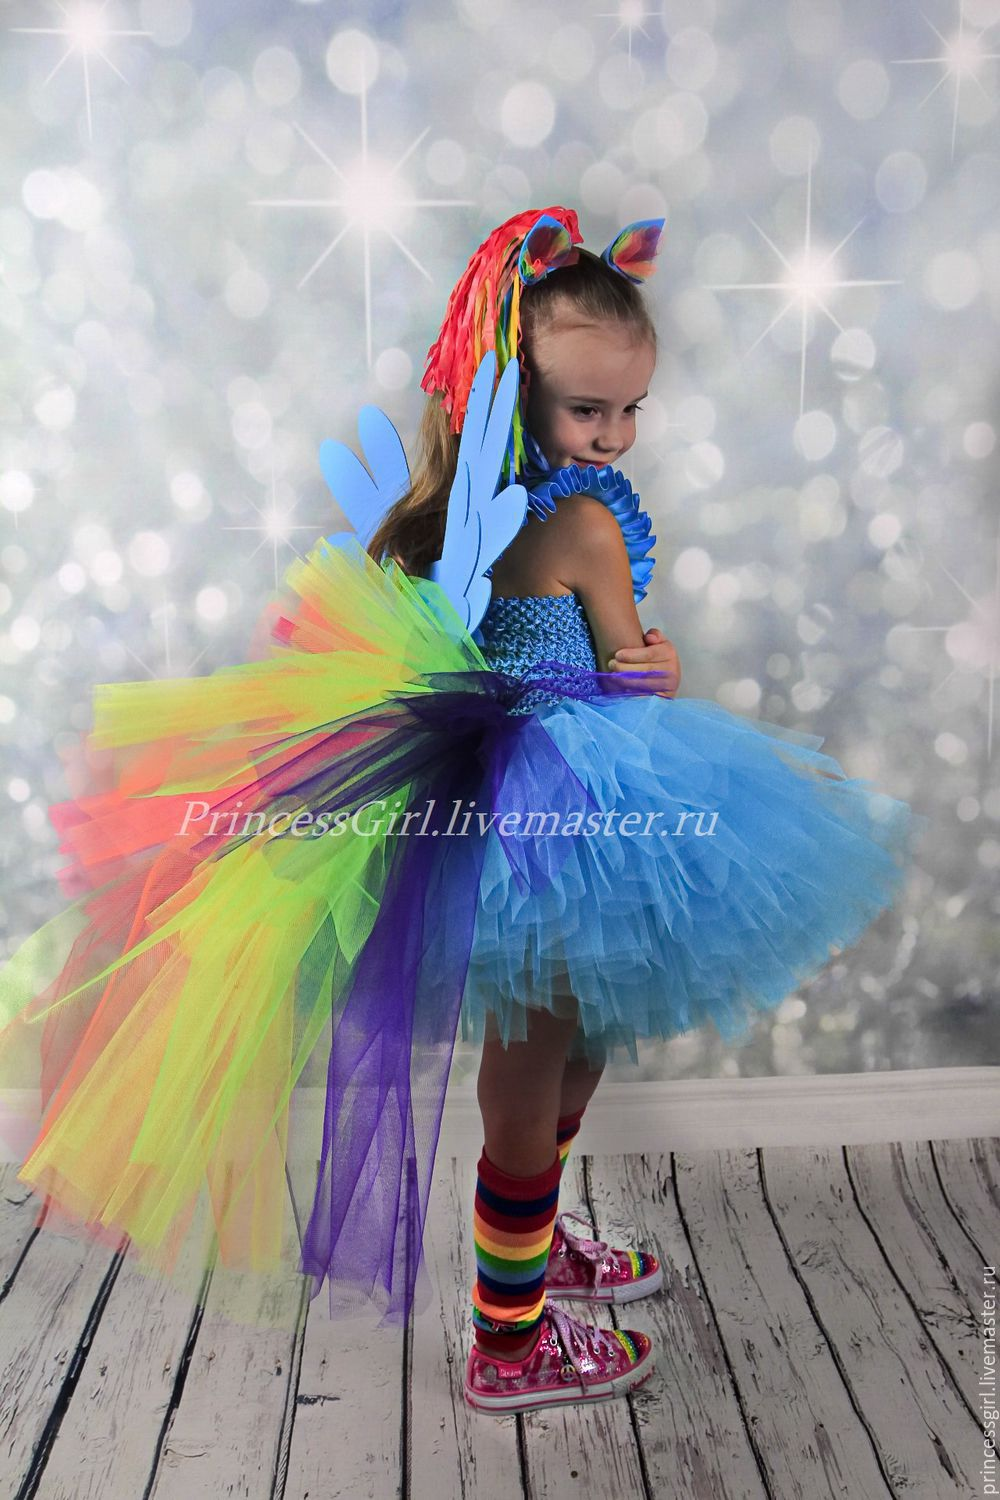 Costume, Rainbow dash My little pony, Carnival costumes for children, Moscow,  Фото №1